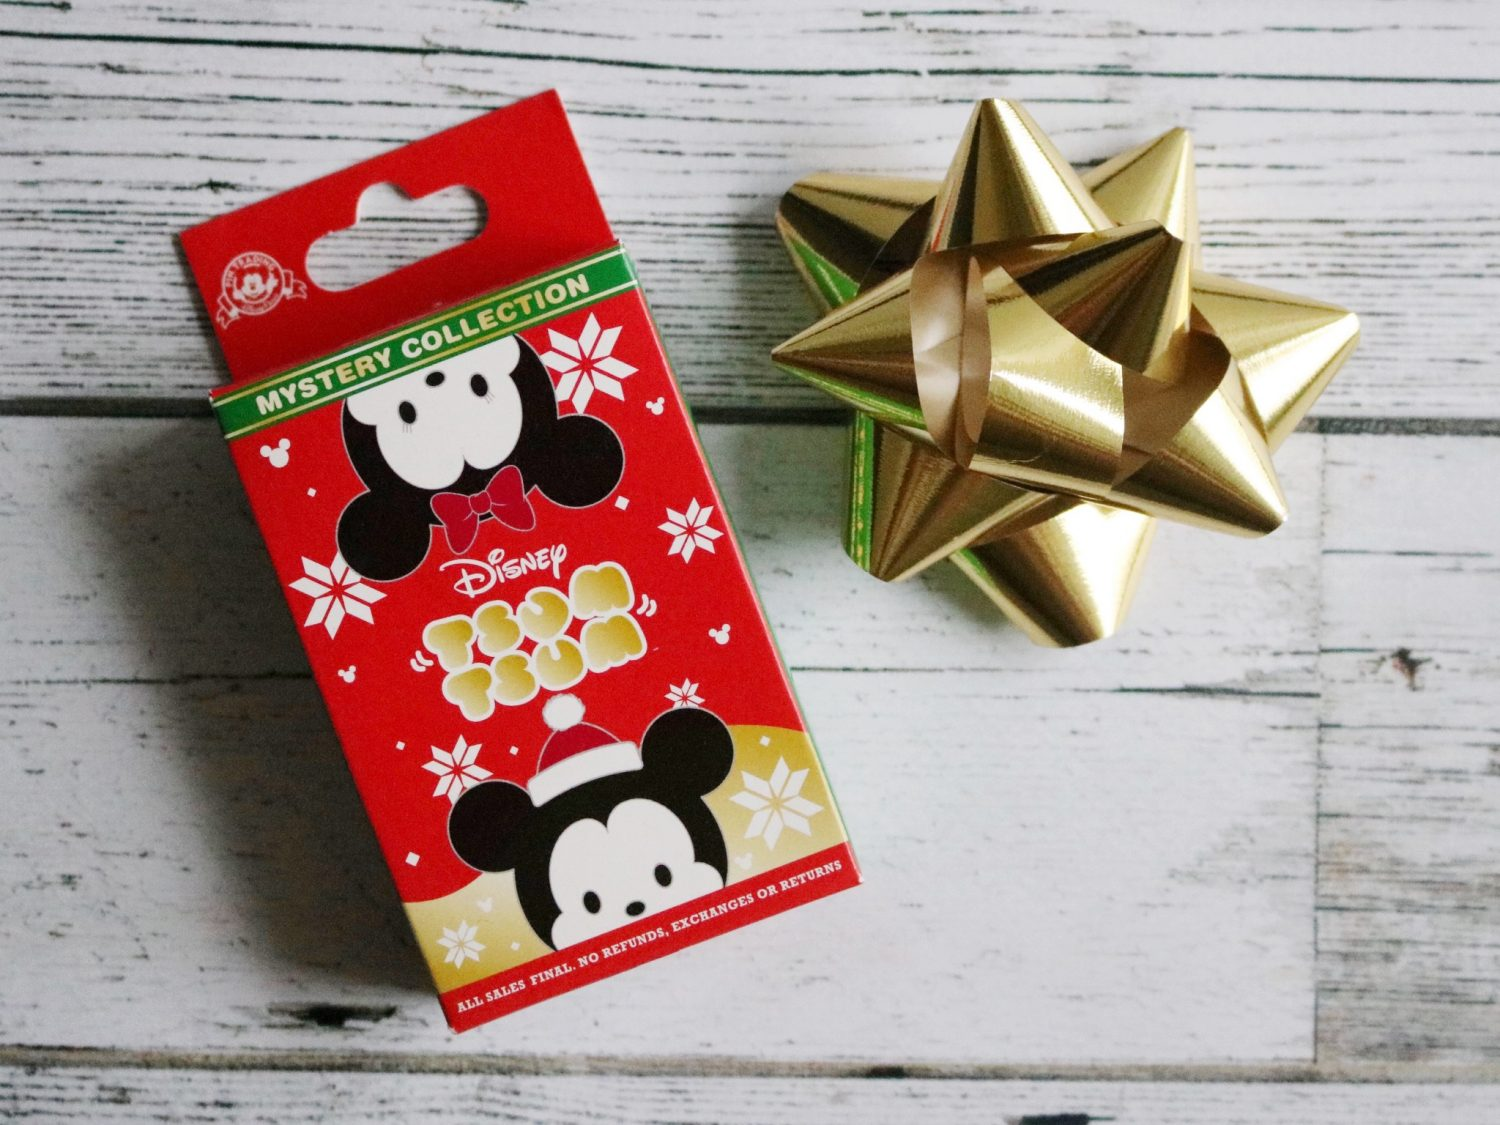 Disney Holiday Mystery Tsum Tsum Pins